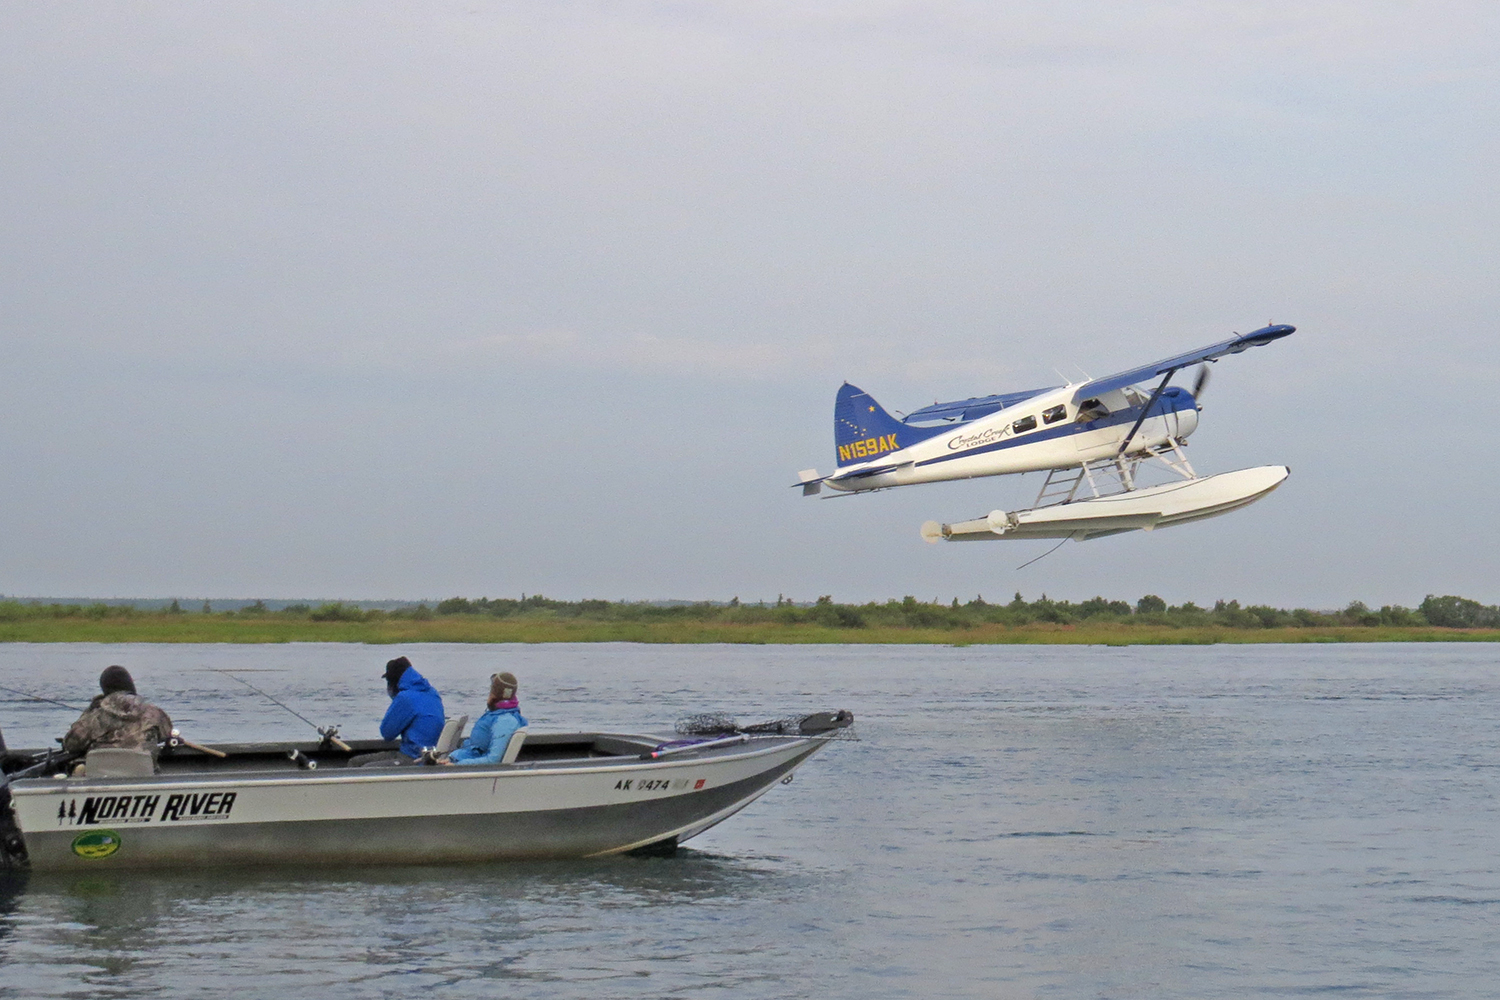 Fly-in fishing trips take memorable fishing adventures to new heights